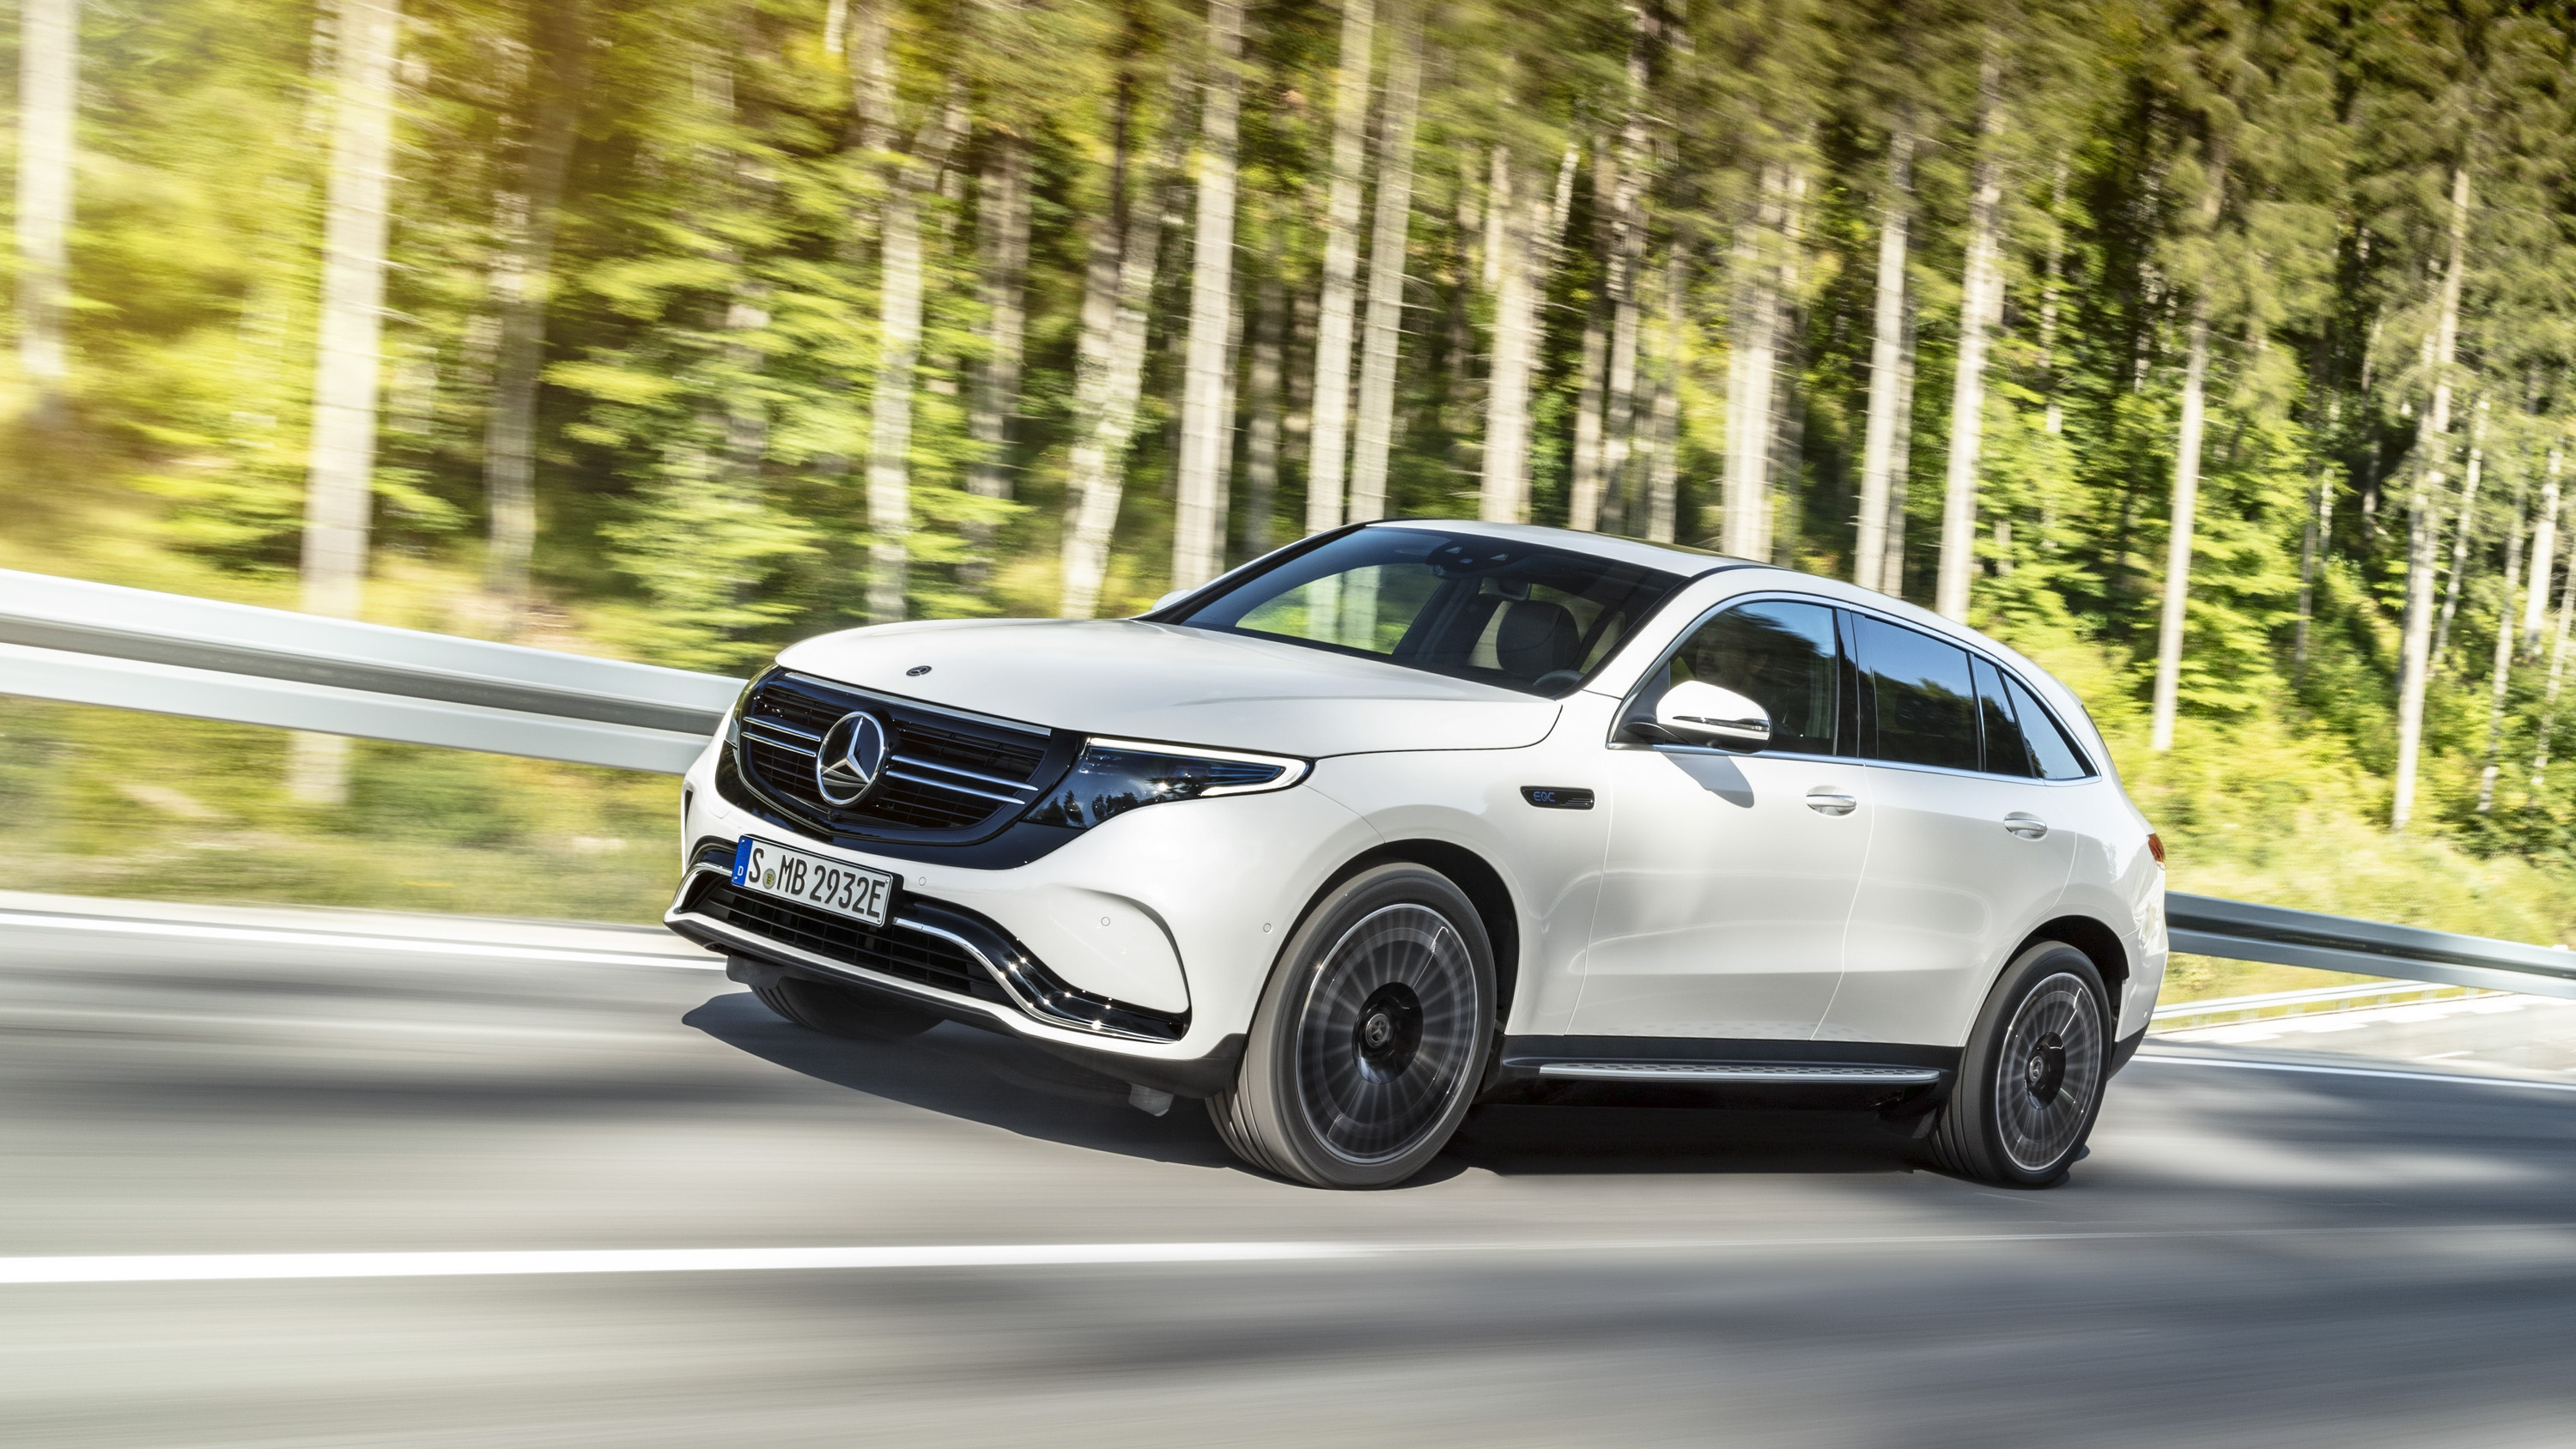 Mercedes Full Size Suv >> The Mercedes EQC Makes A Quiet Debut With 200 Miles Of Range, 402 Horsepower, And The Ability To ...